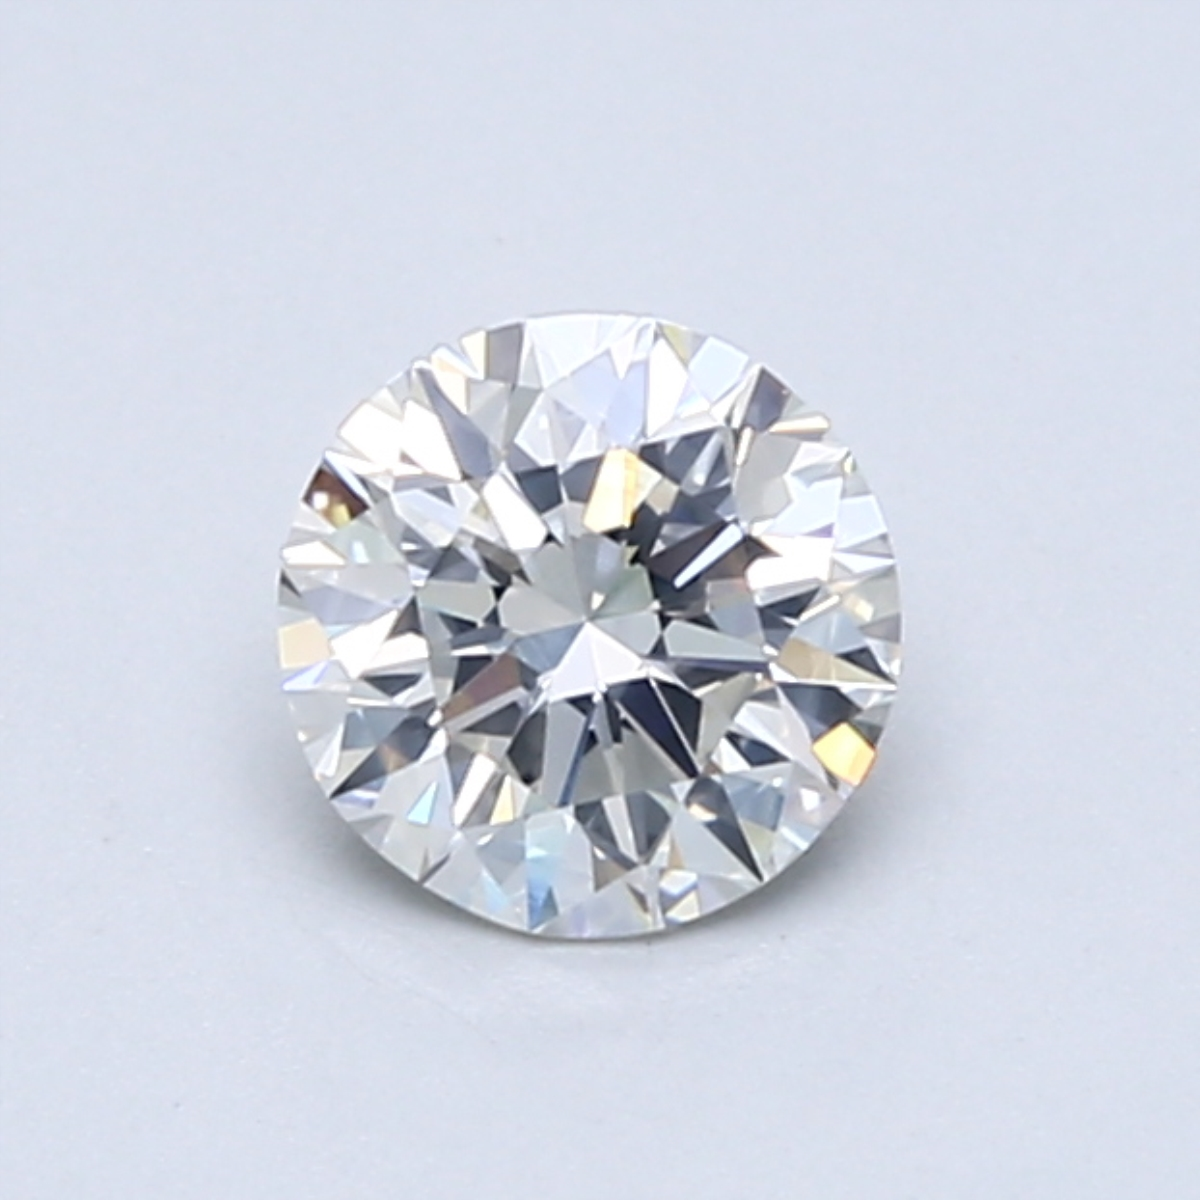 .70 carat Round Diamond, Ideal cut, graded by the GIA laboratories.